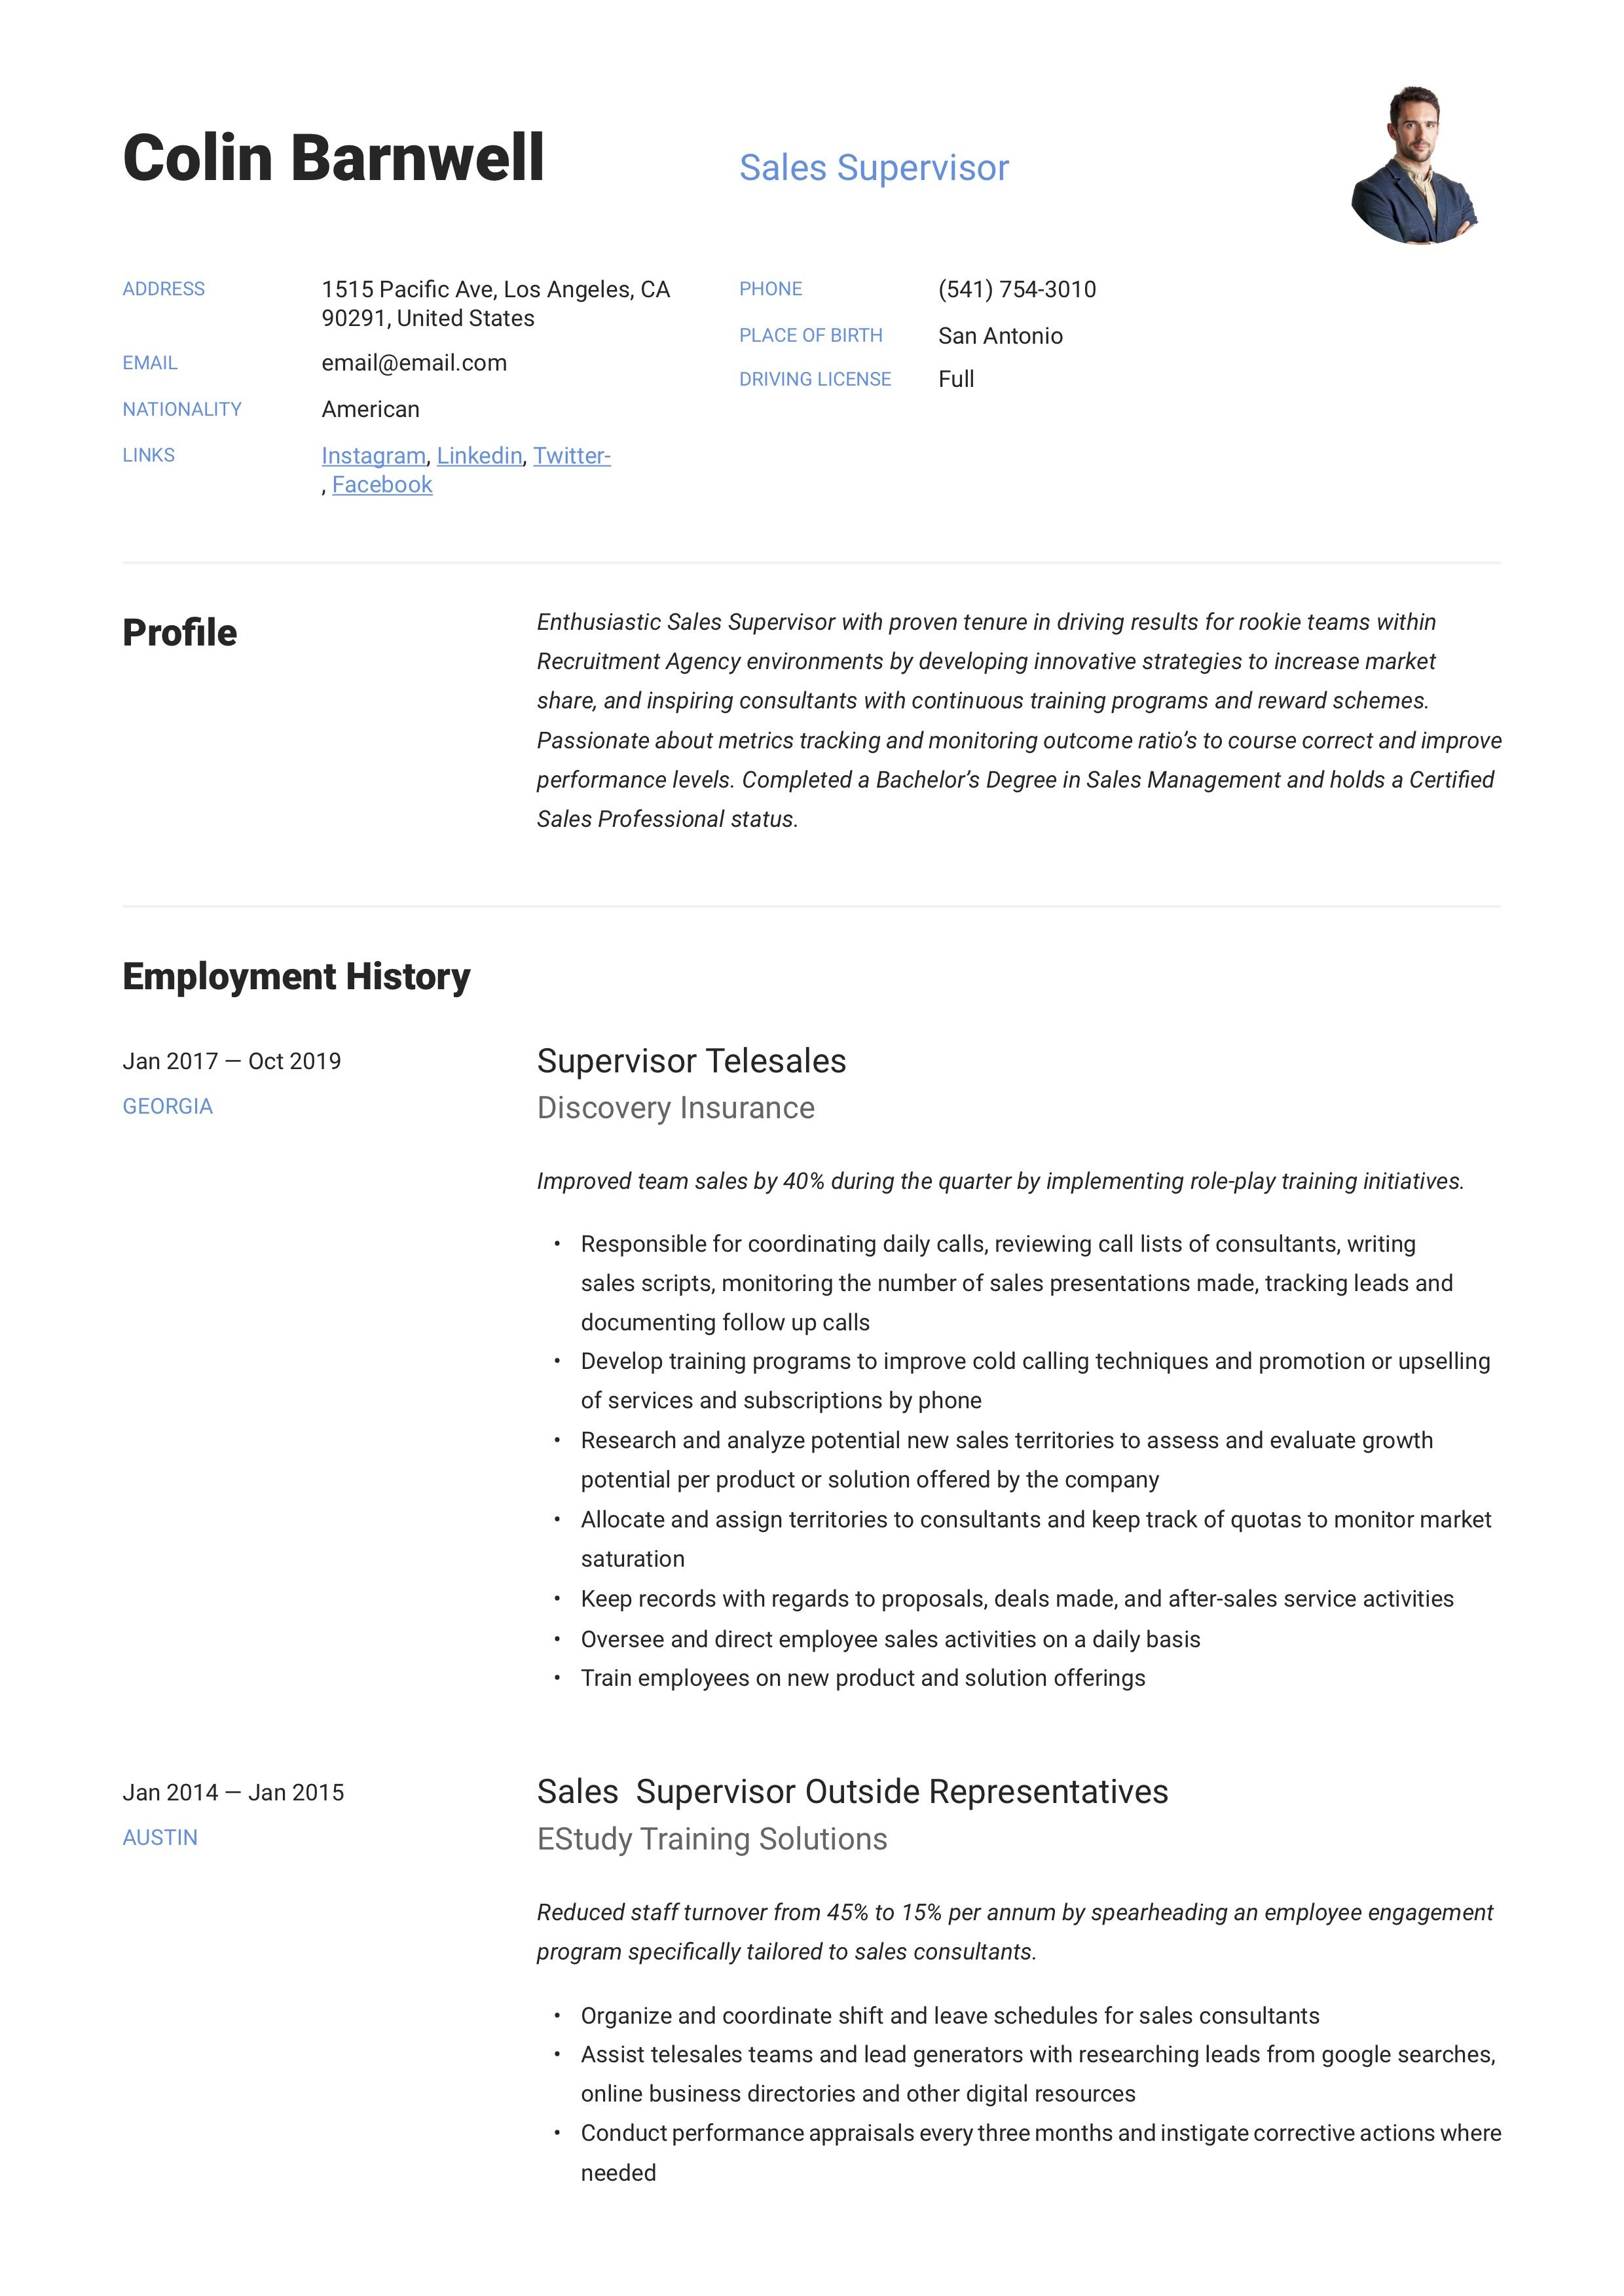 Sales Supervisor Resume Example in 2020 Resume examples